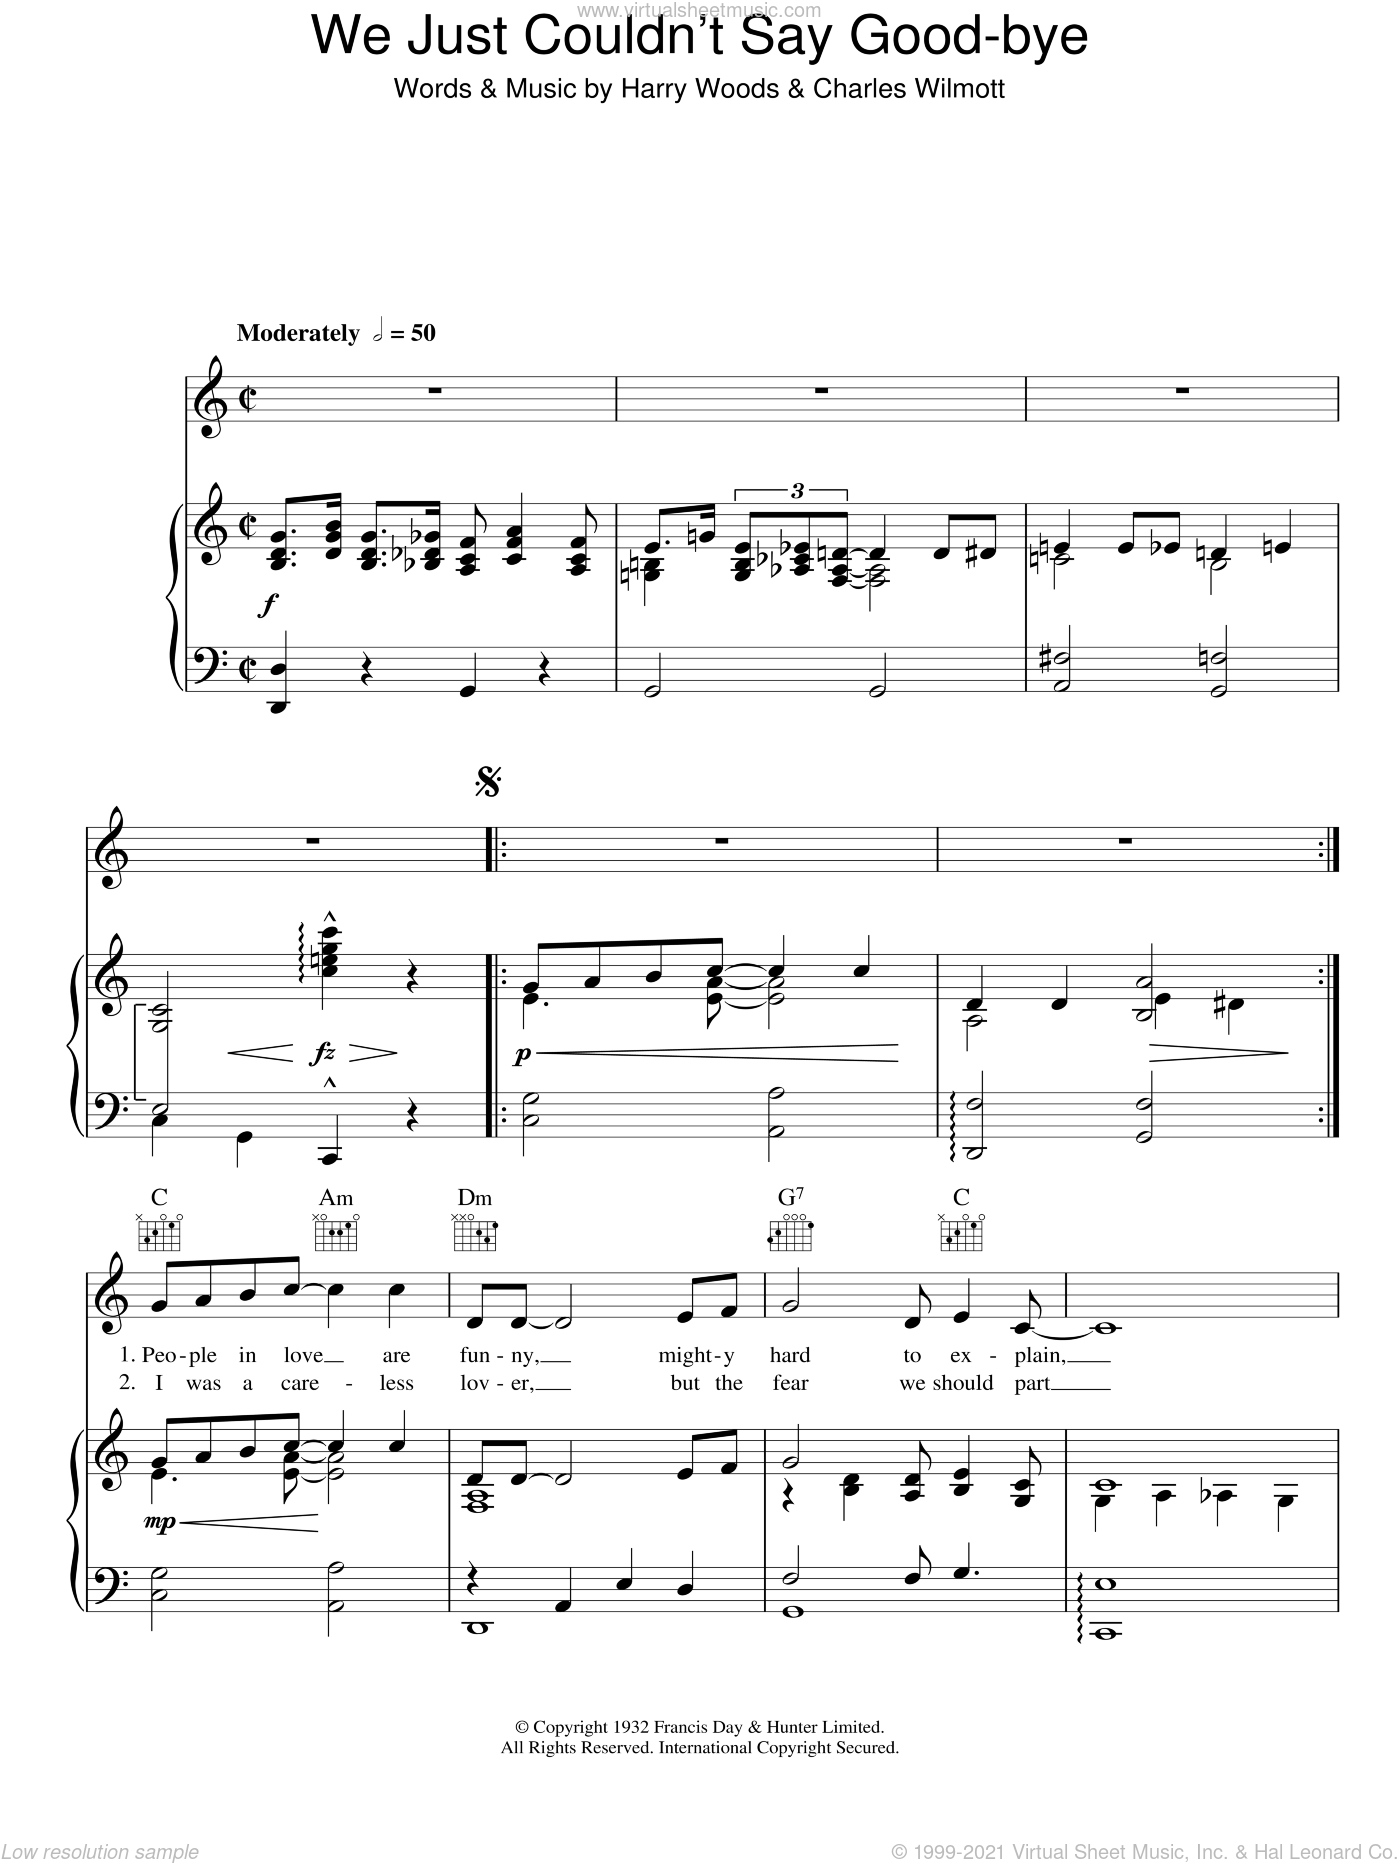 We Just Couldn't Say Goodbye sheet music for voice, piano or guitar by Harry Woods